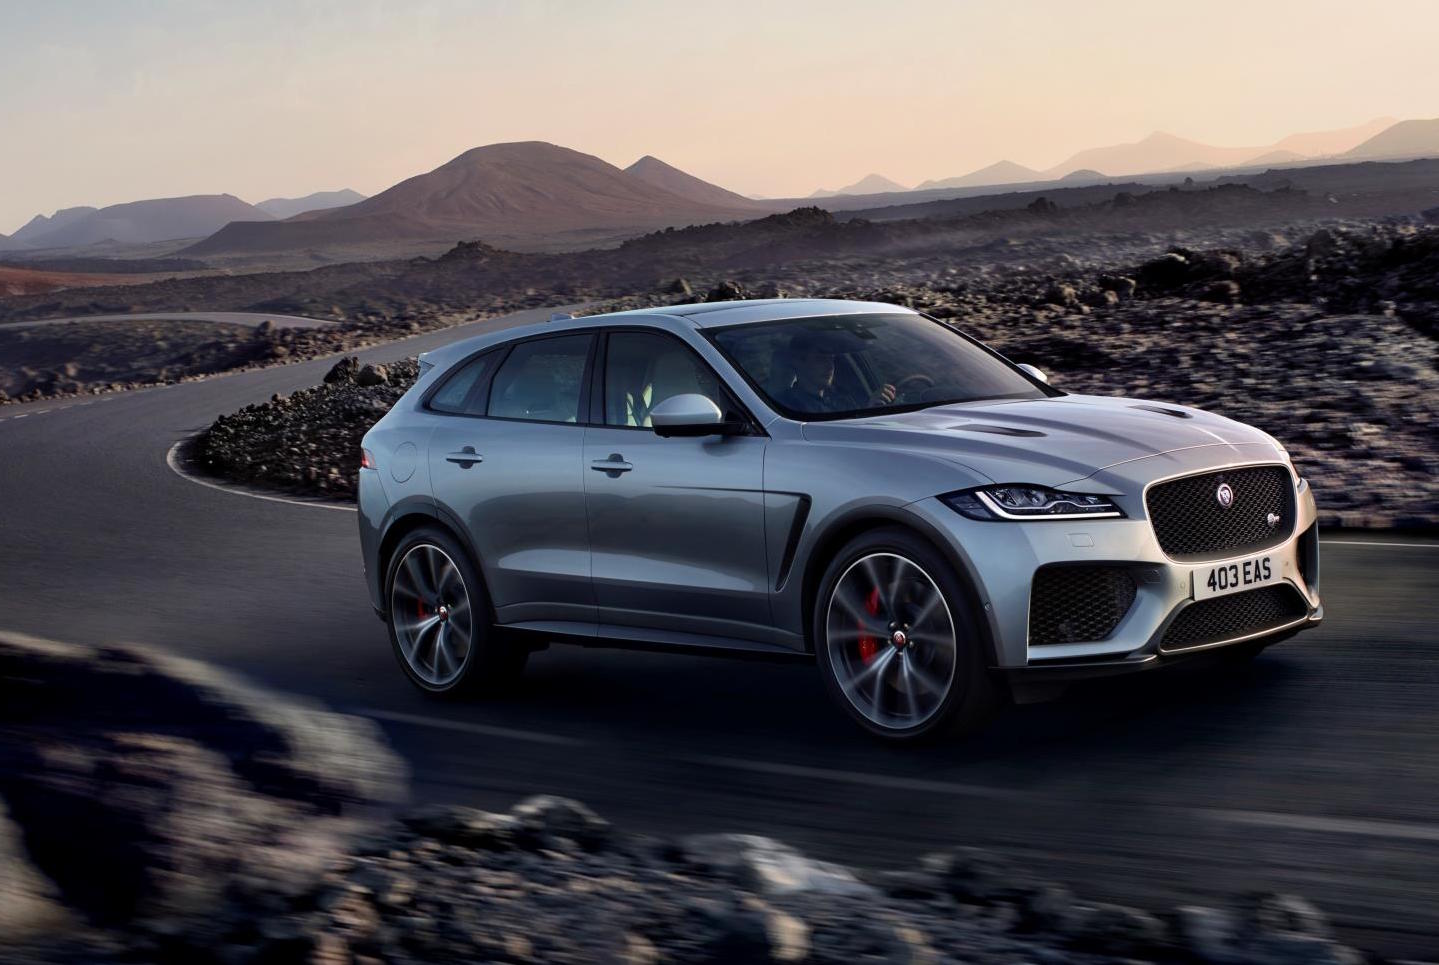 jaguar f pace svr now available to order in australia prices confirmed performancedrive. Black Bedroom Furniture Sets. Home Design Ideas